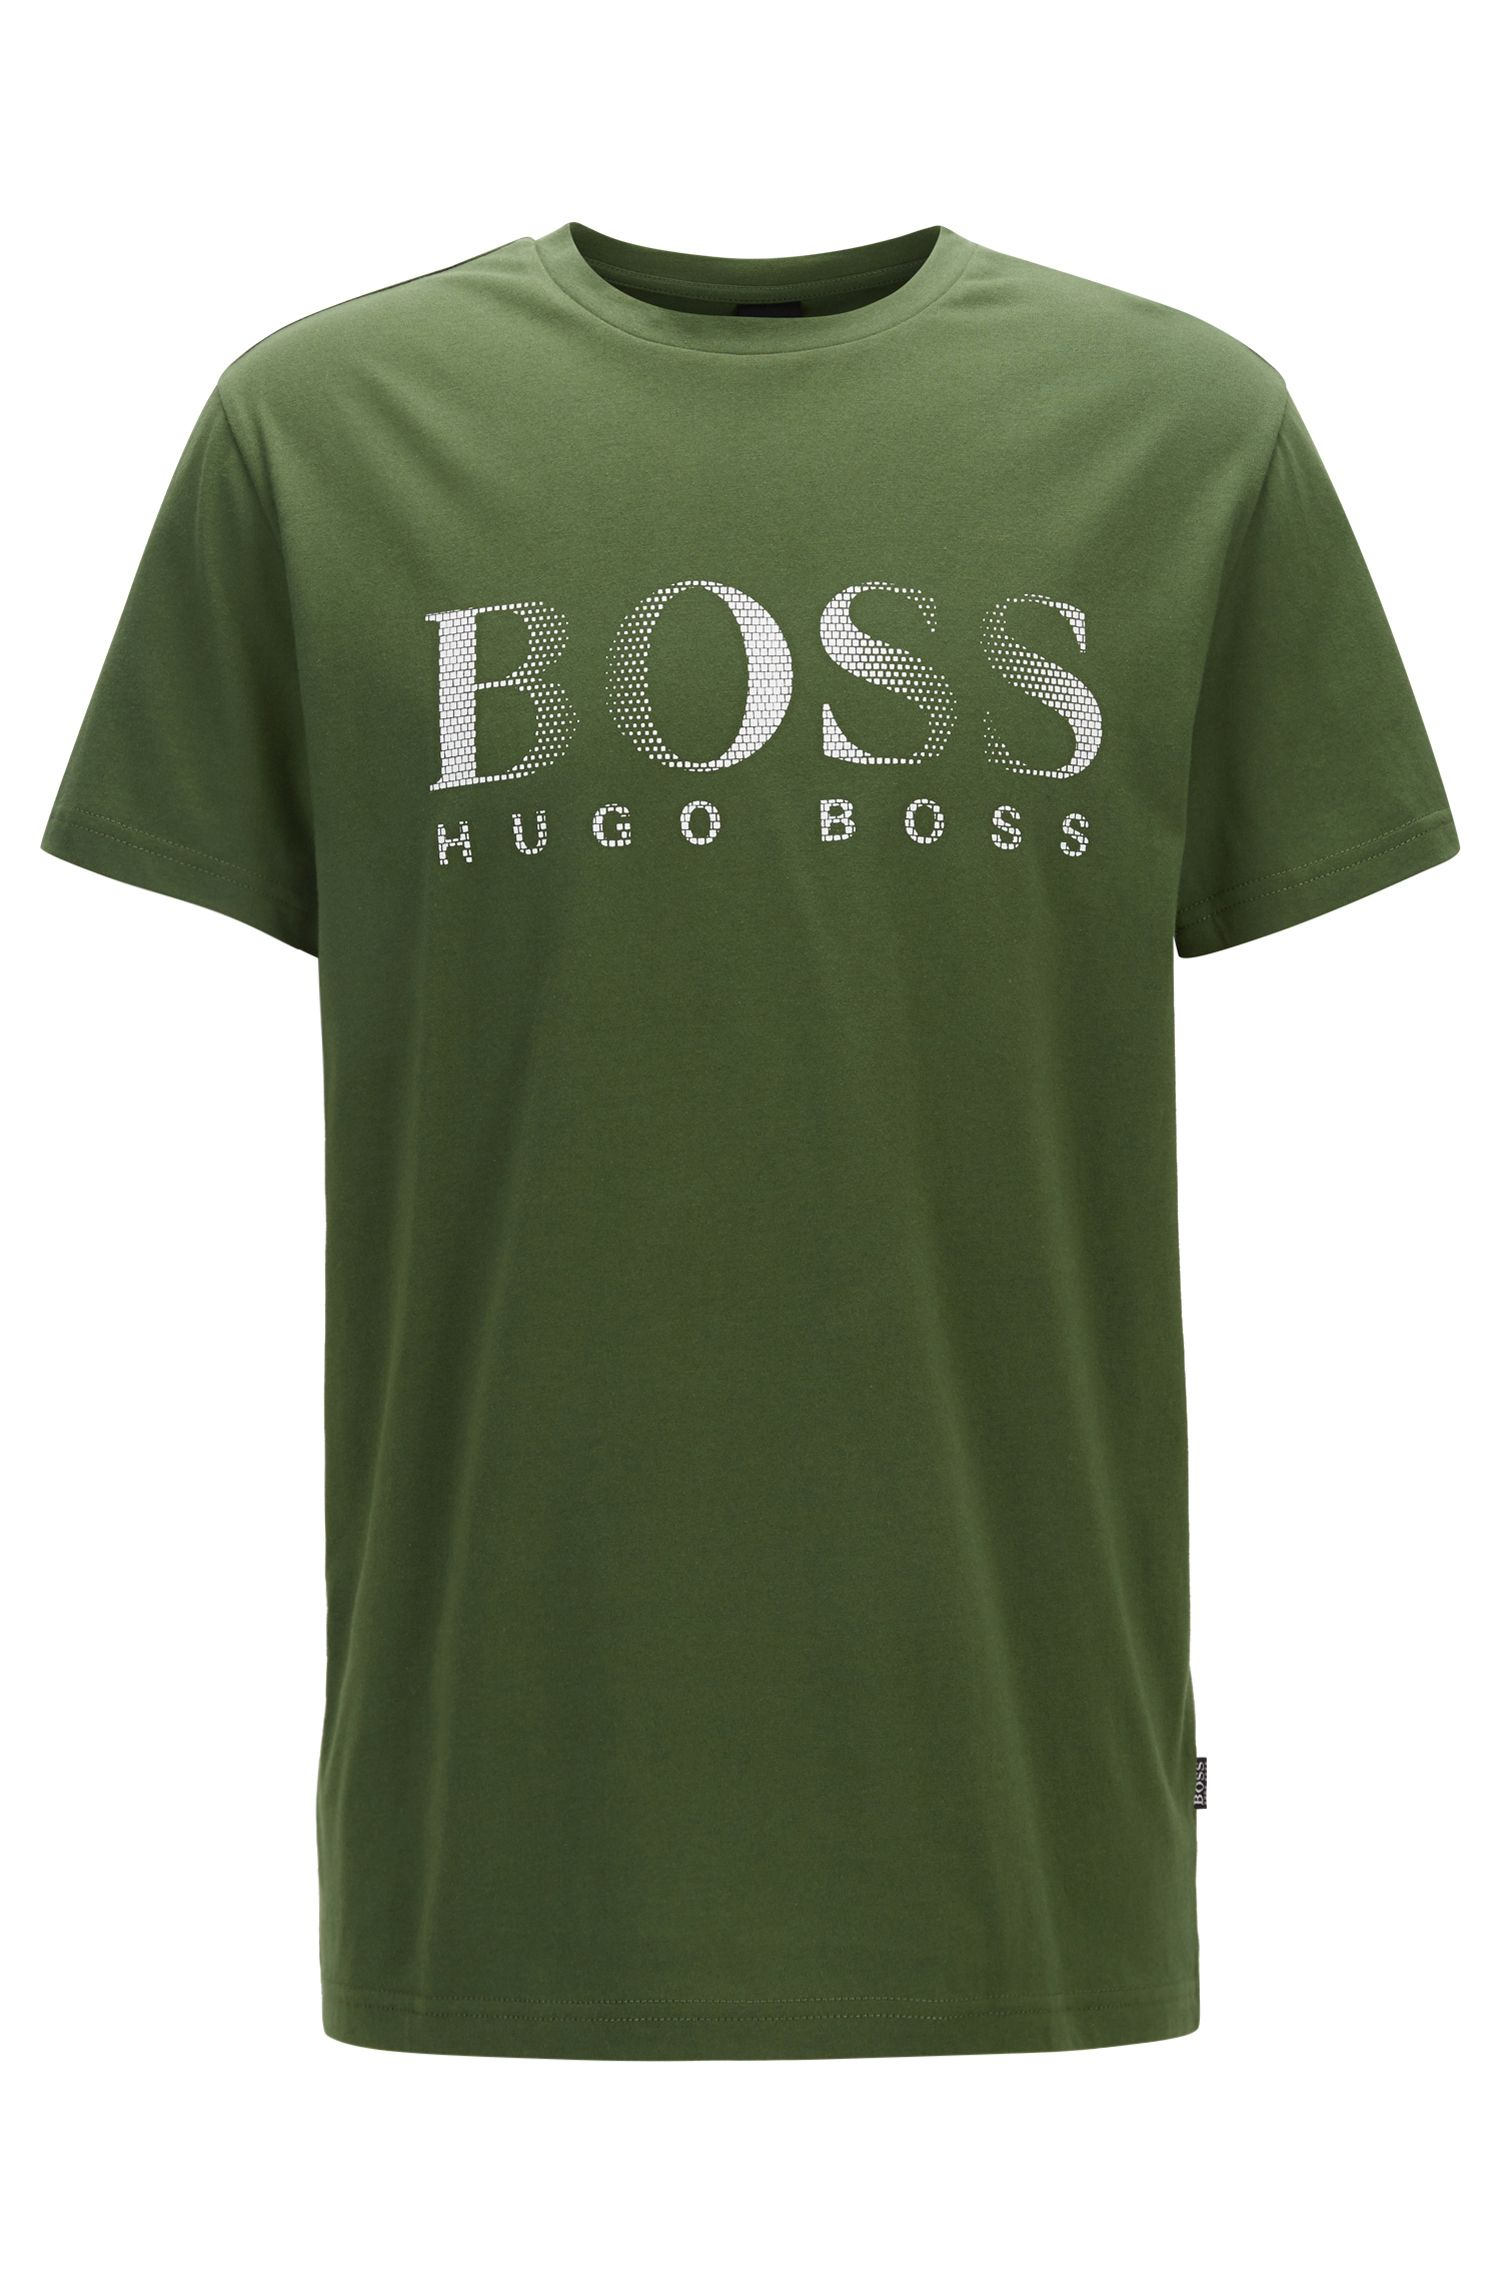 T-shirt relaxed fit in cotone con protezione UV